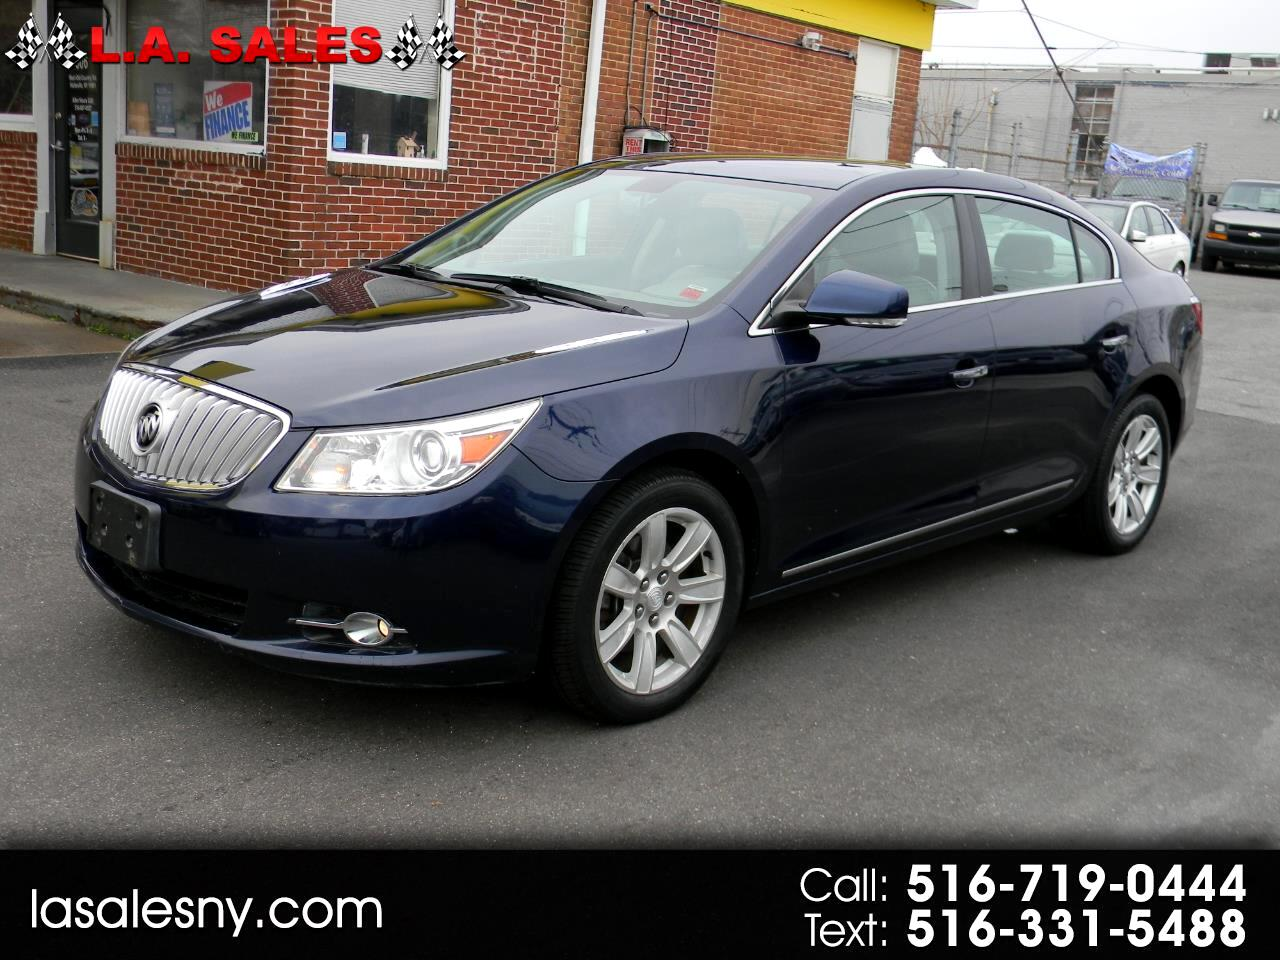 Buick LaCrosse 4dr Sdn CXL 3.0L AWD 2010